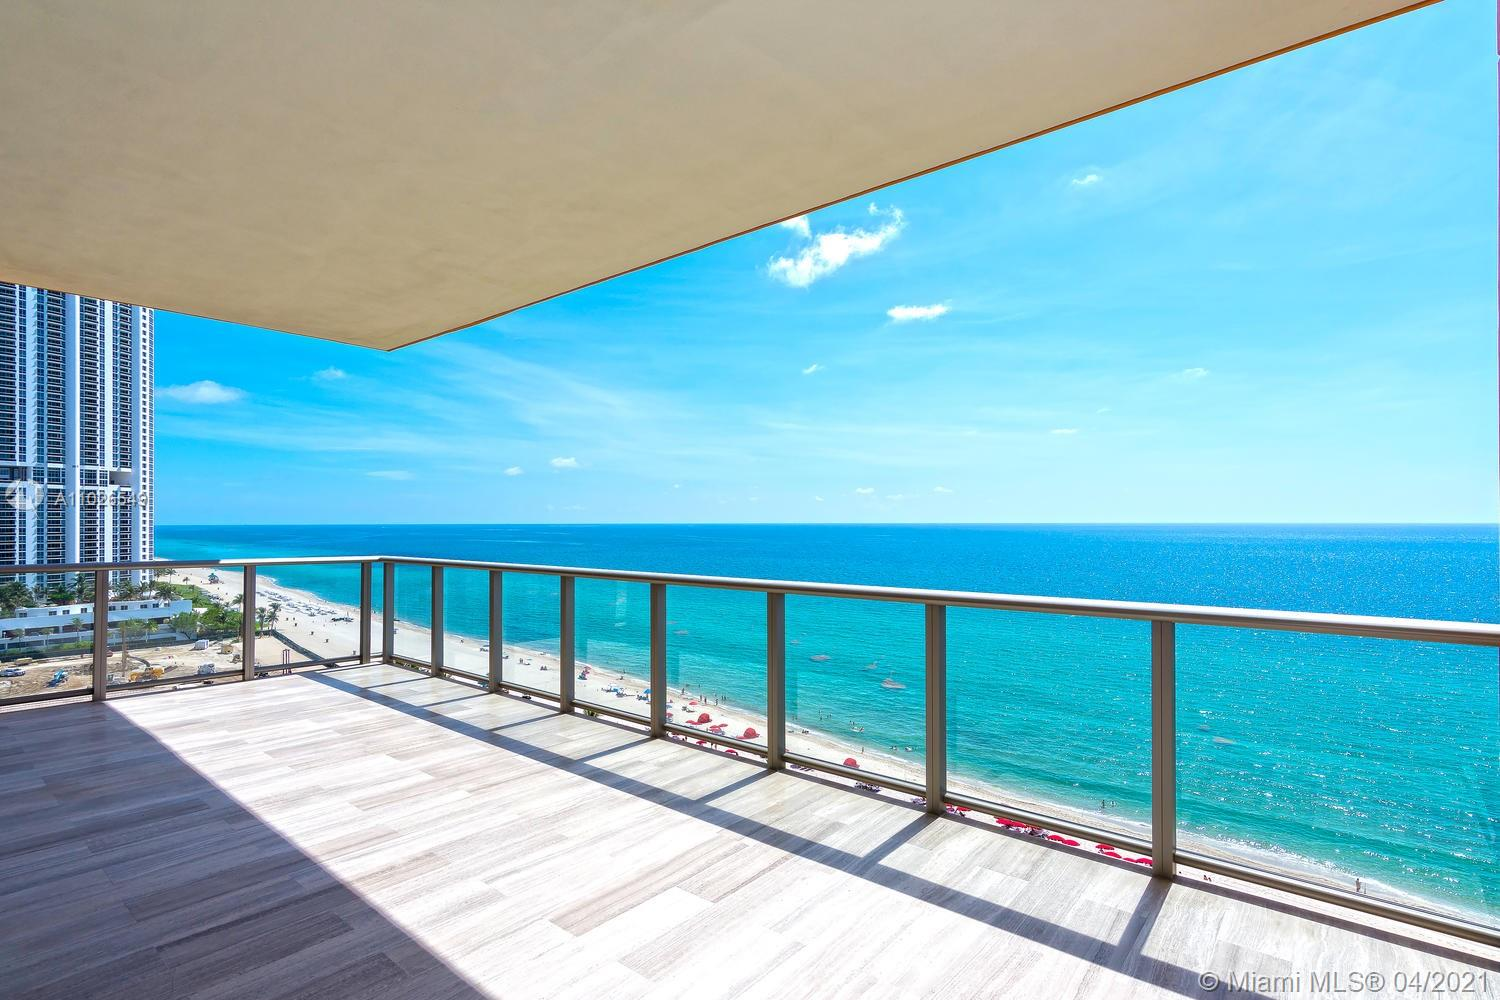 Spectacular corner unit facing ocean and city skyline. ready to move in! Top of the line finishes and appliances - live in like 5 star hotel! Full of amenities with exceptional services! Enjoy sunrise overlooking Acqualina's expansive beachside amenities and sunset from the private waterfall jacuzzi and summer kitchen. 10.6 ft ceilings, Downsview kitchen w/ Miele appliances, gas fireplace, Master suite w/ his/her baths, leather closets, steam showers, Crestron smart climate/light control. Rolls Royce house car, cigar/wine lounge, theatre, spa, hamman, kids room, golf sim, breakfast served daily. Access to Acqualina's 5 star hotel services, ESPA, Il Mulino.